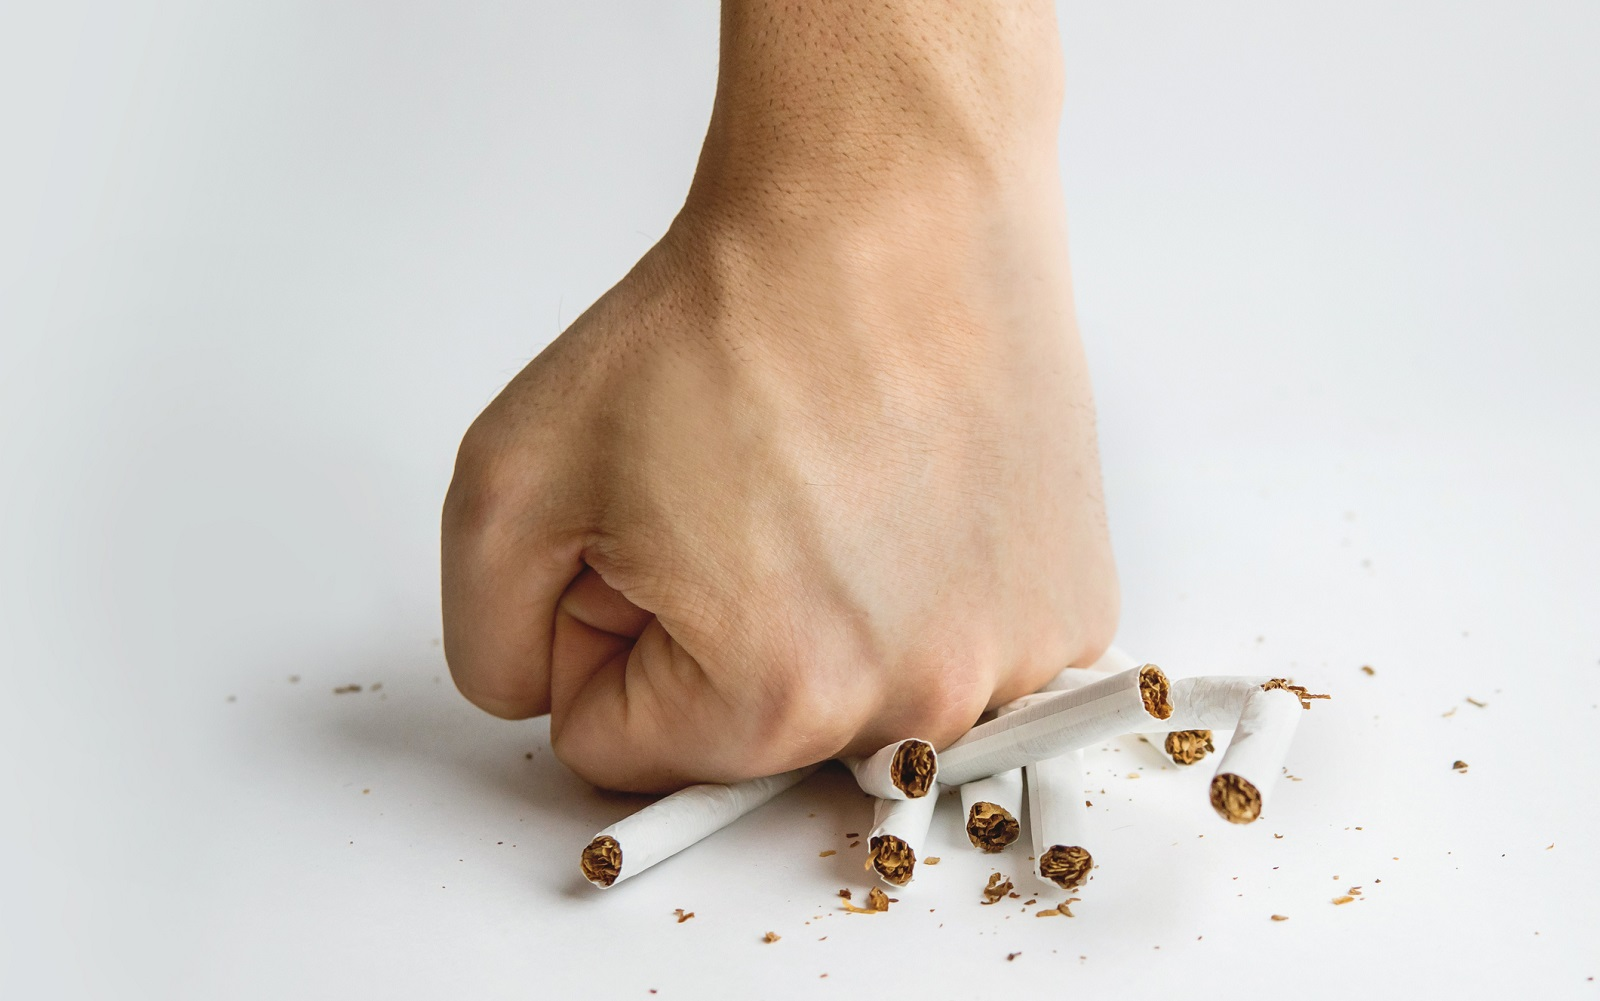 A hand crushing several unlit cigarettes on a table.